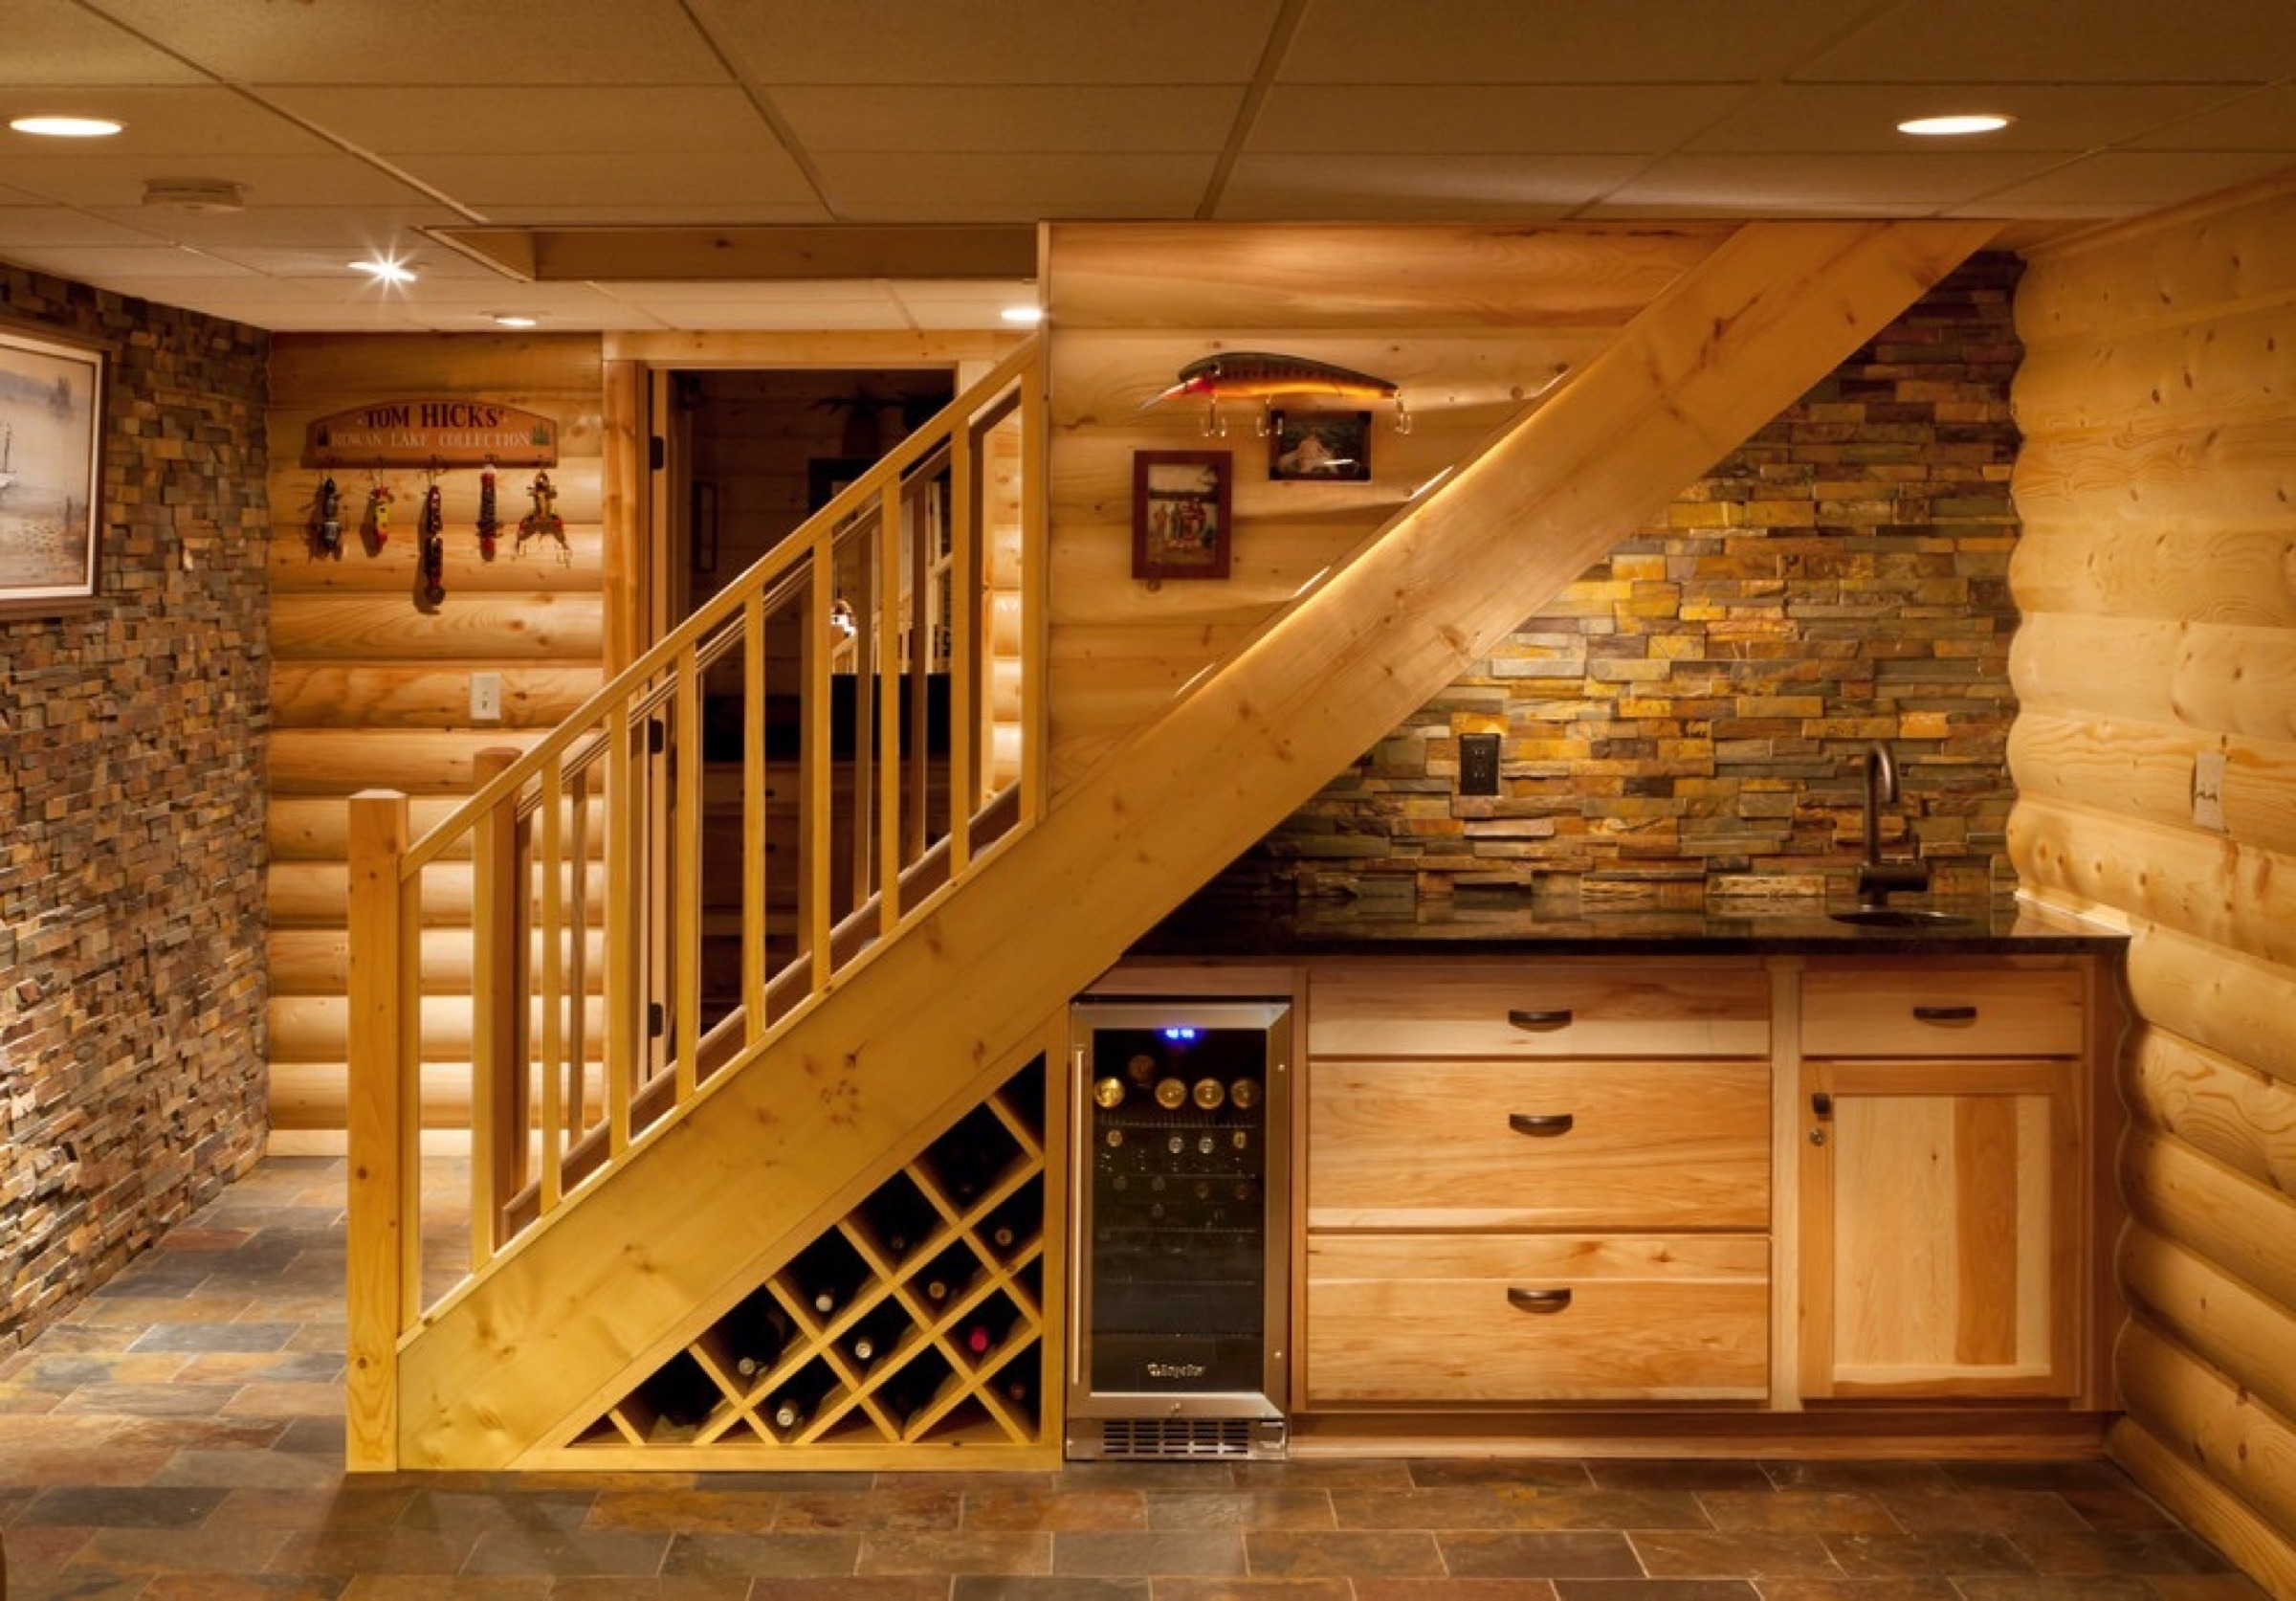 Basement Staircase Installation Costs Updated Prices In 2020 | Precast Basement Stairs Cost | Spiral Staircase | Walkout Basement Entrance | Concrete Products | Finished Basement | Bilco Doors